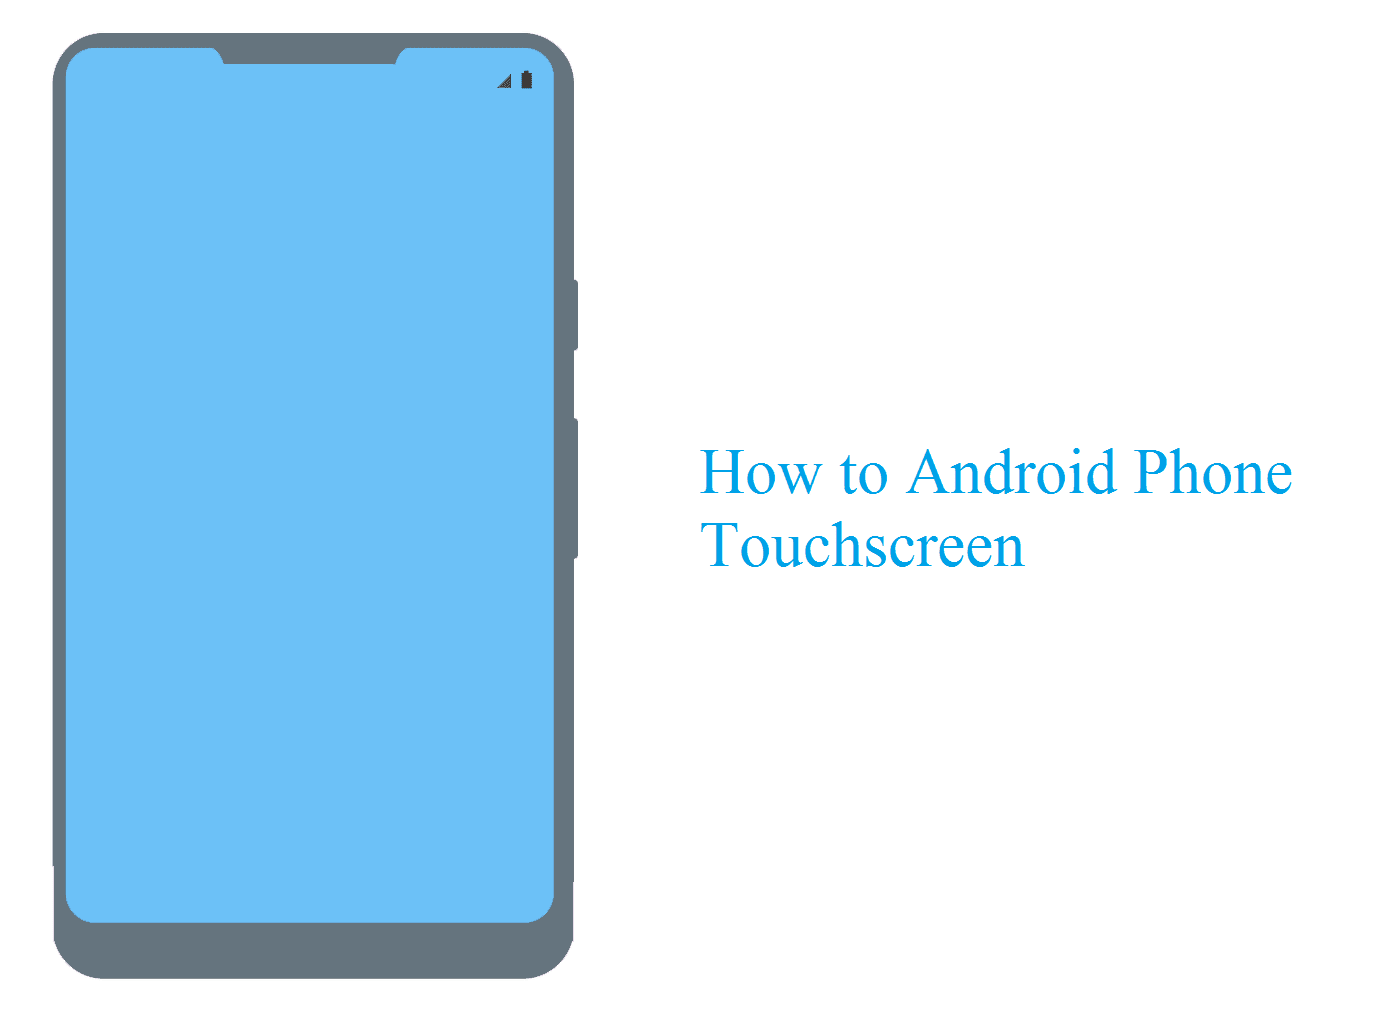 Cek touchscreen HP Android